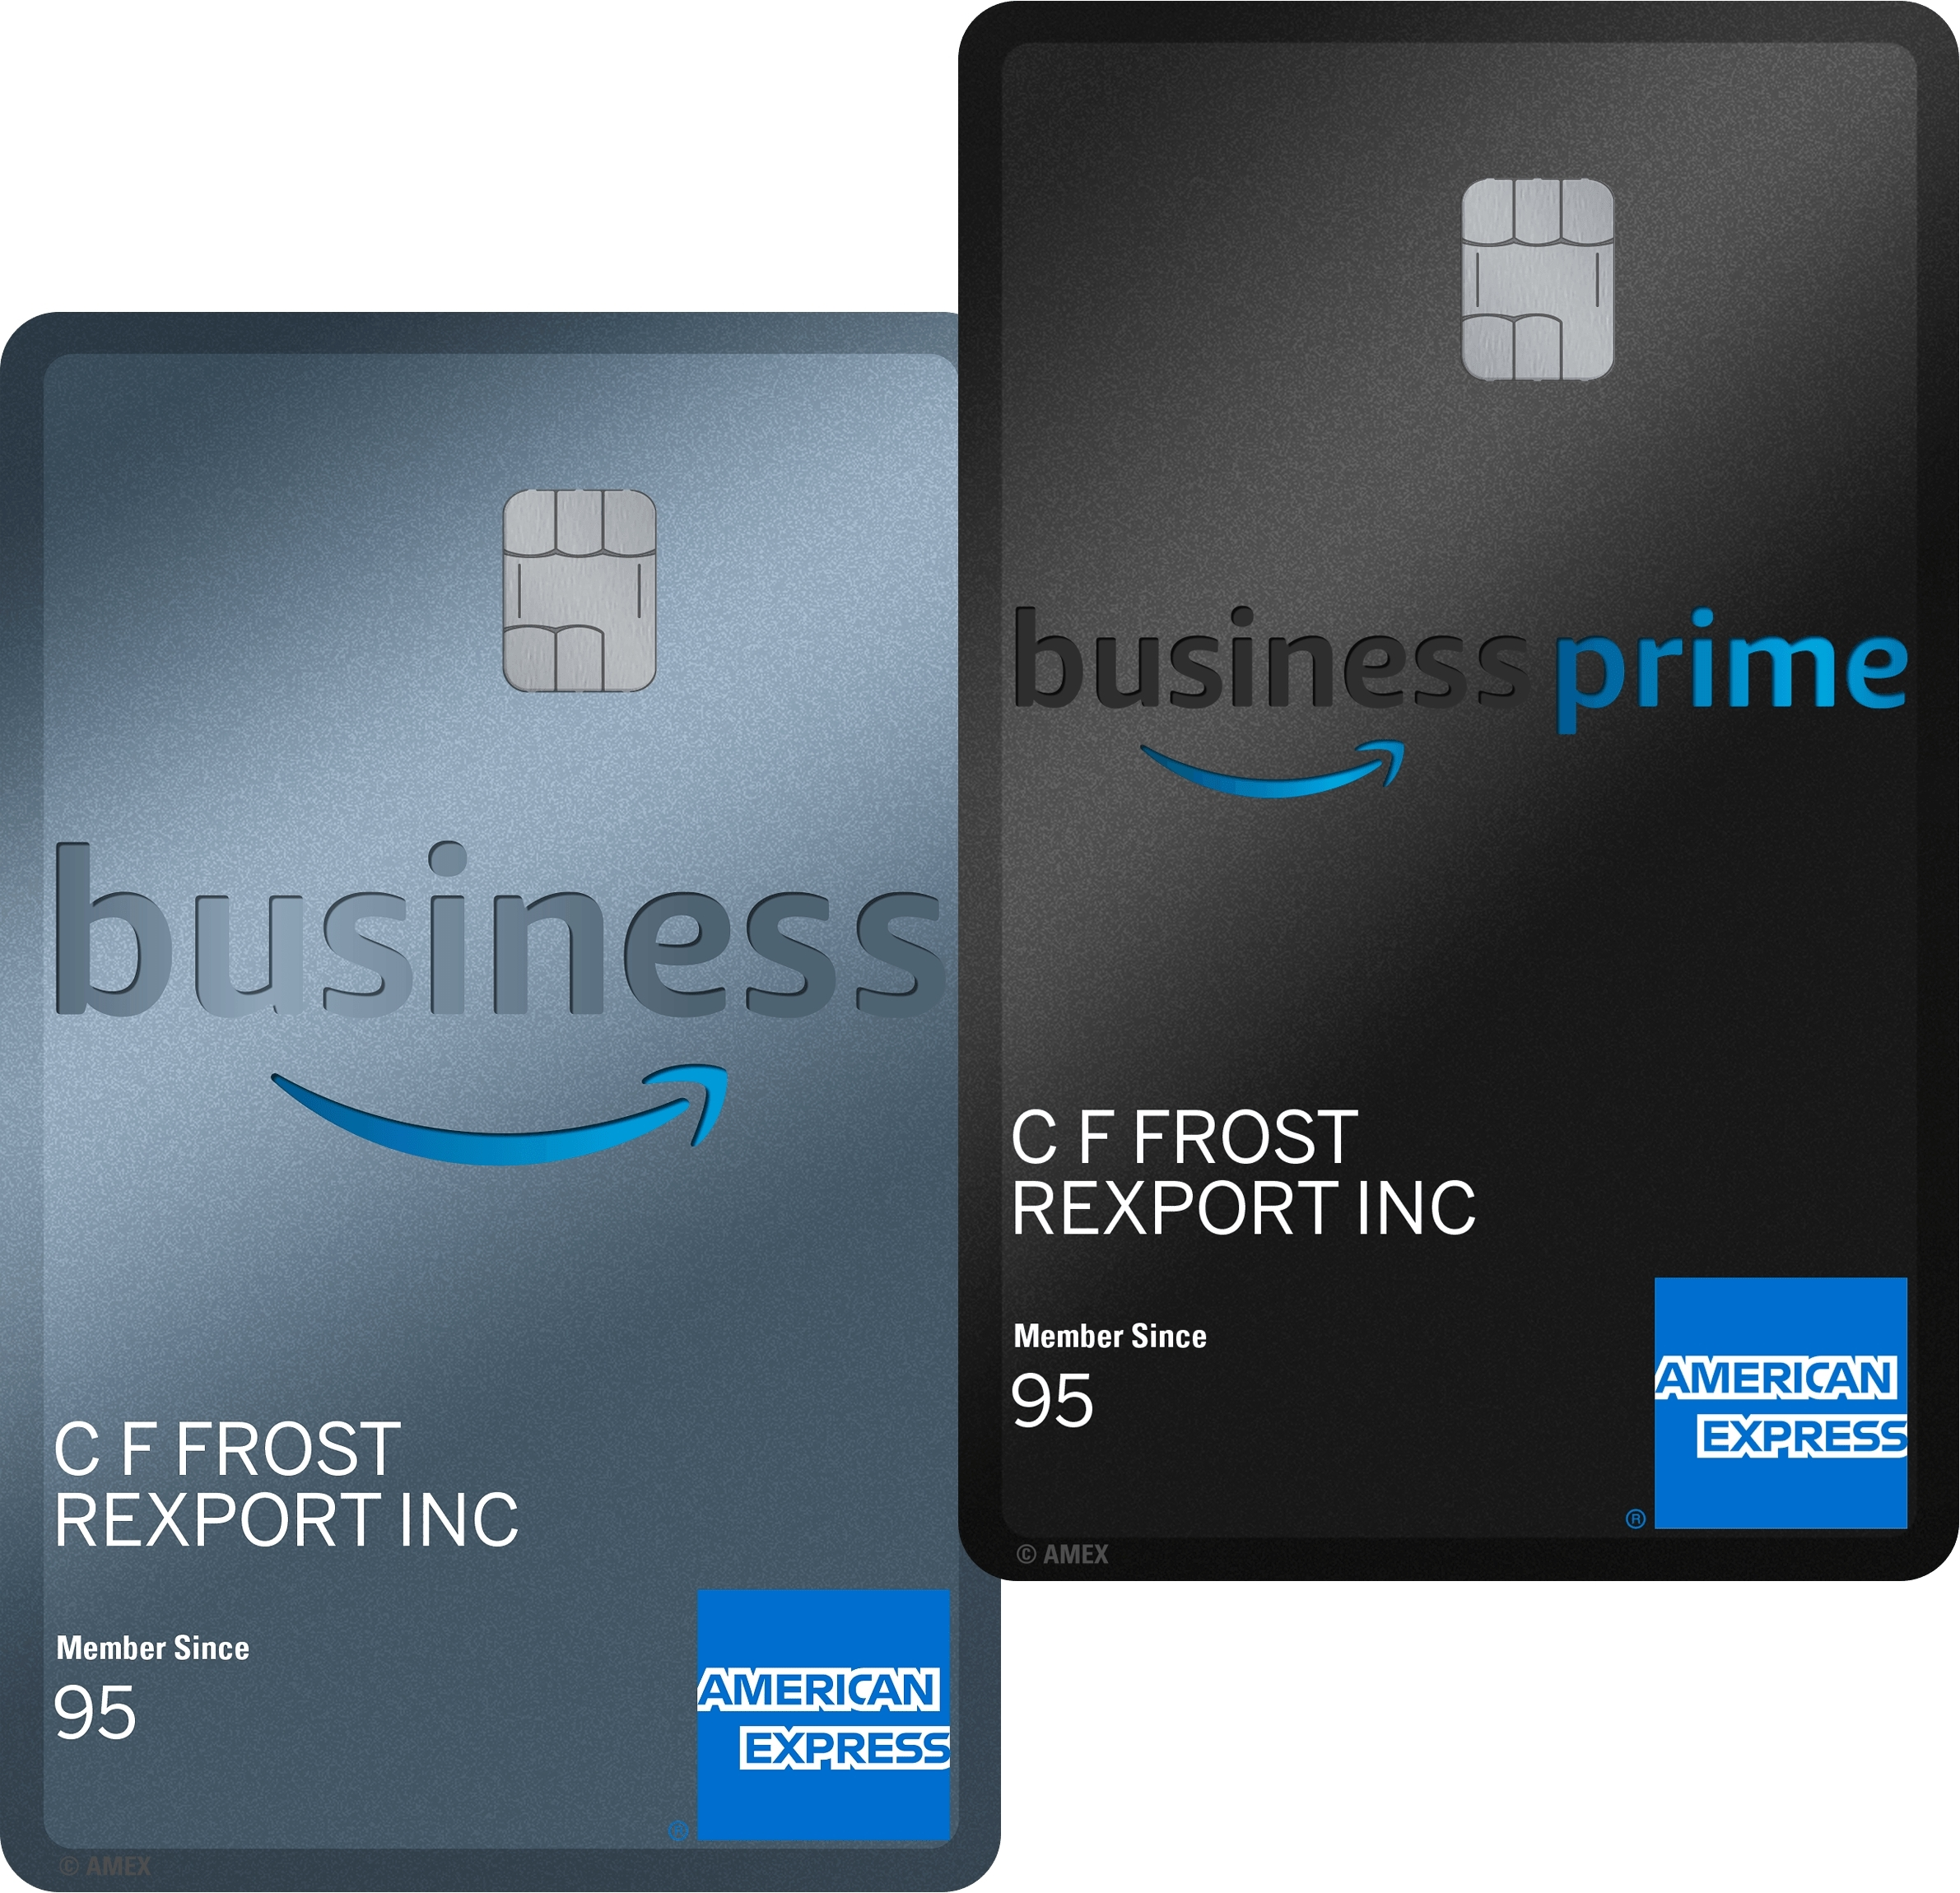 Introducing the Amazon Business American Express Card for Small